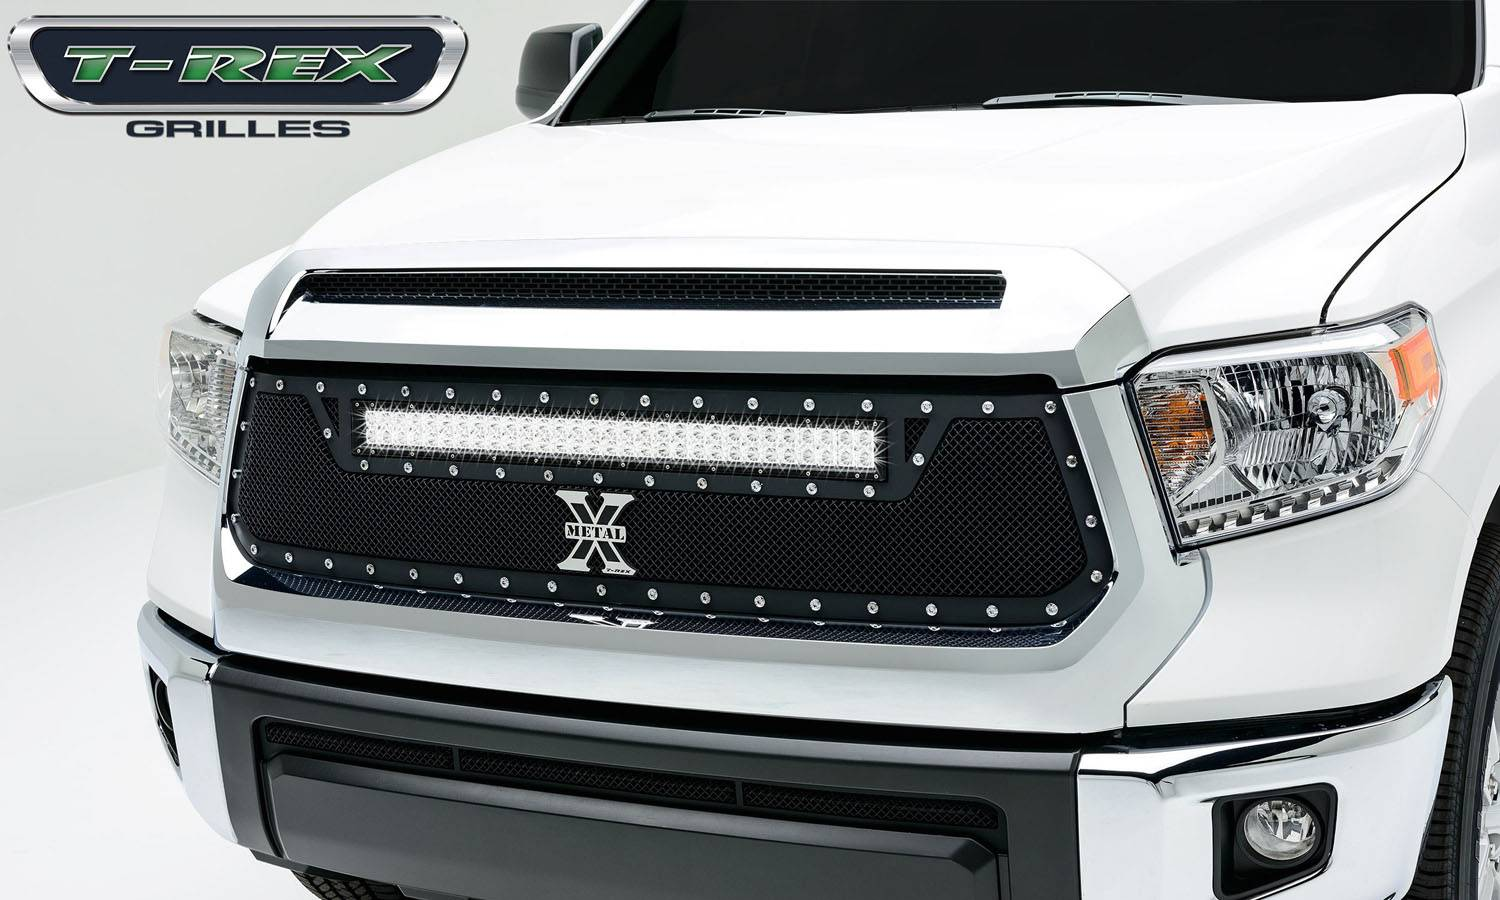 T rex toyota tundra torch series led light grille 1 30 led bar formed mesh main grille replacement 1 pc black powdercoated mild steel for off road